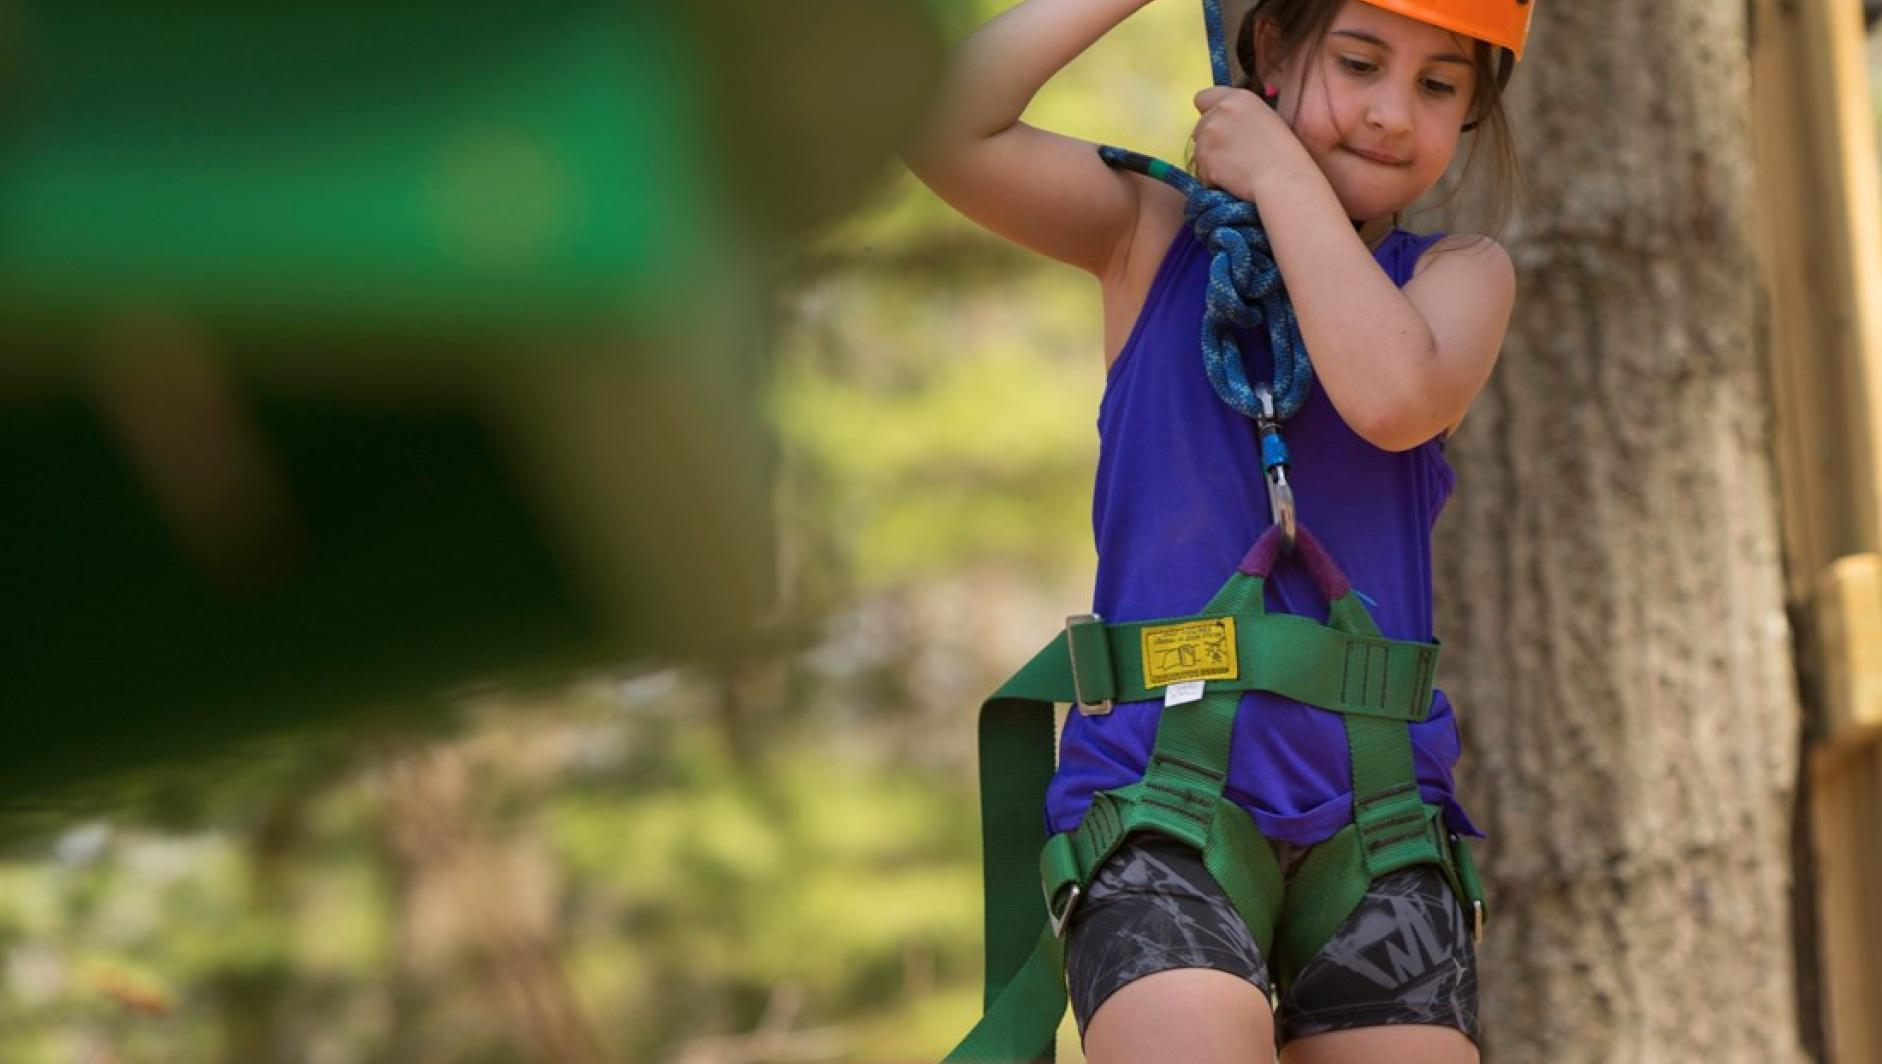 Student in challenge course